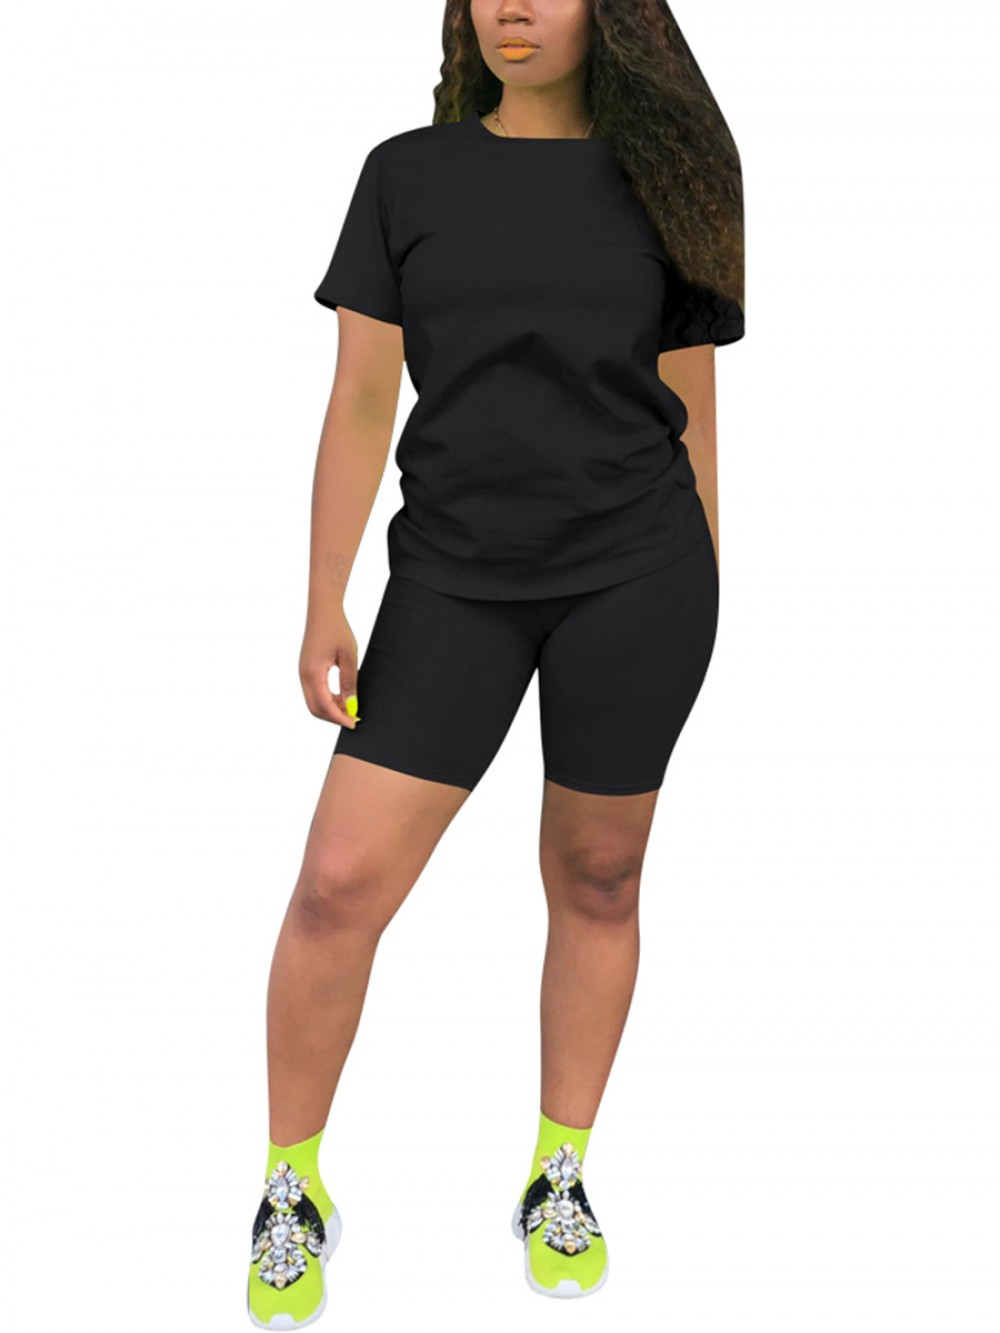 Tailored Black Plus Size Sports Suit Short-Sleeves Modern